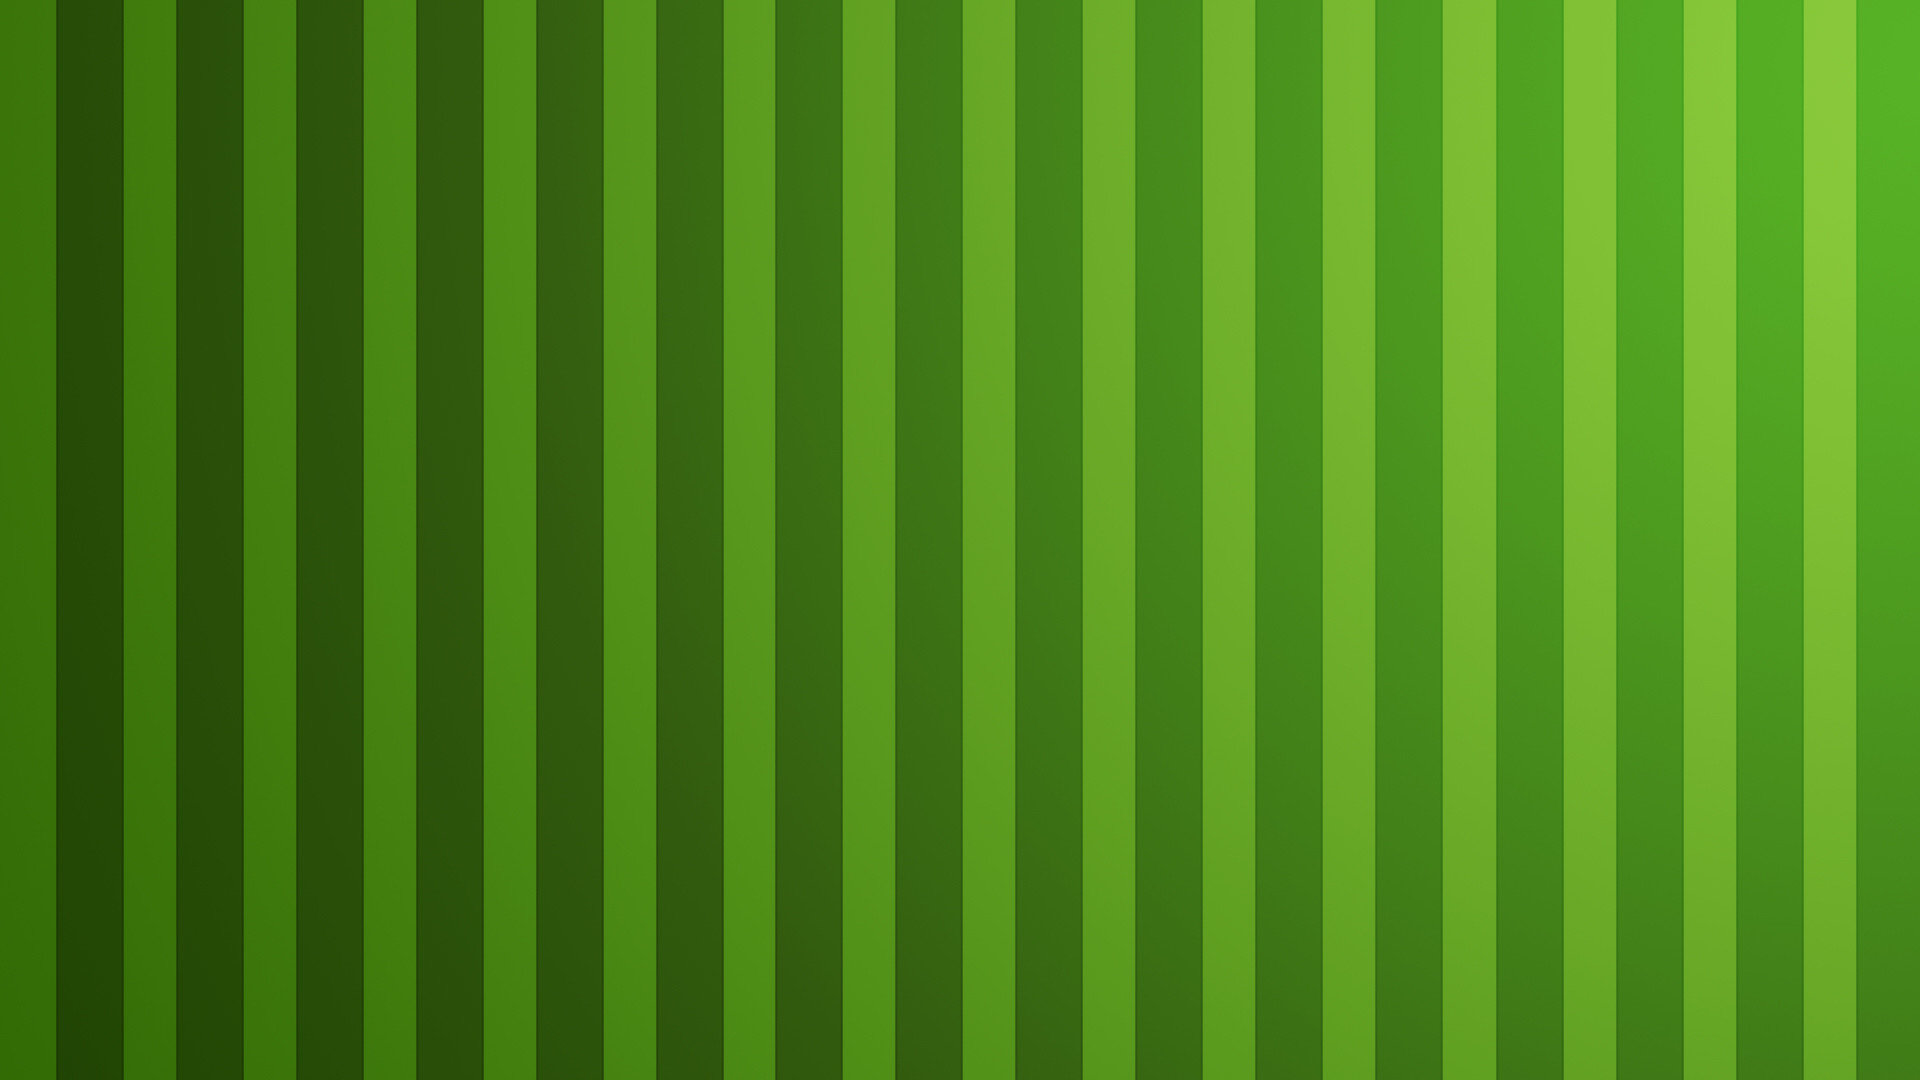 Green wallpaper hd 69 images 1920x1080 collection of black green wallpaper hd on spyder wallpapers voltagebd Choice Image